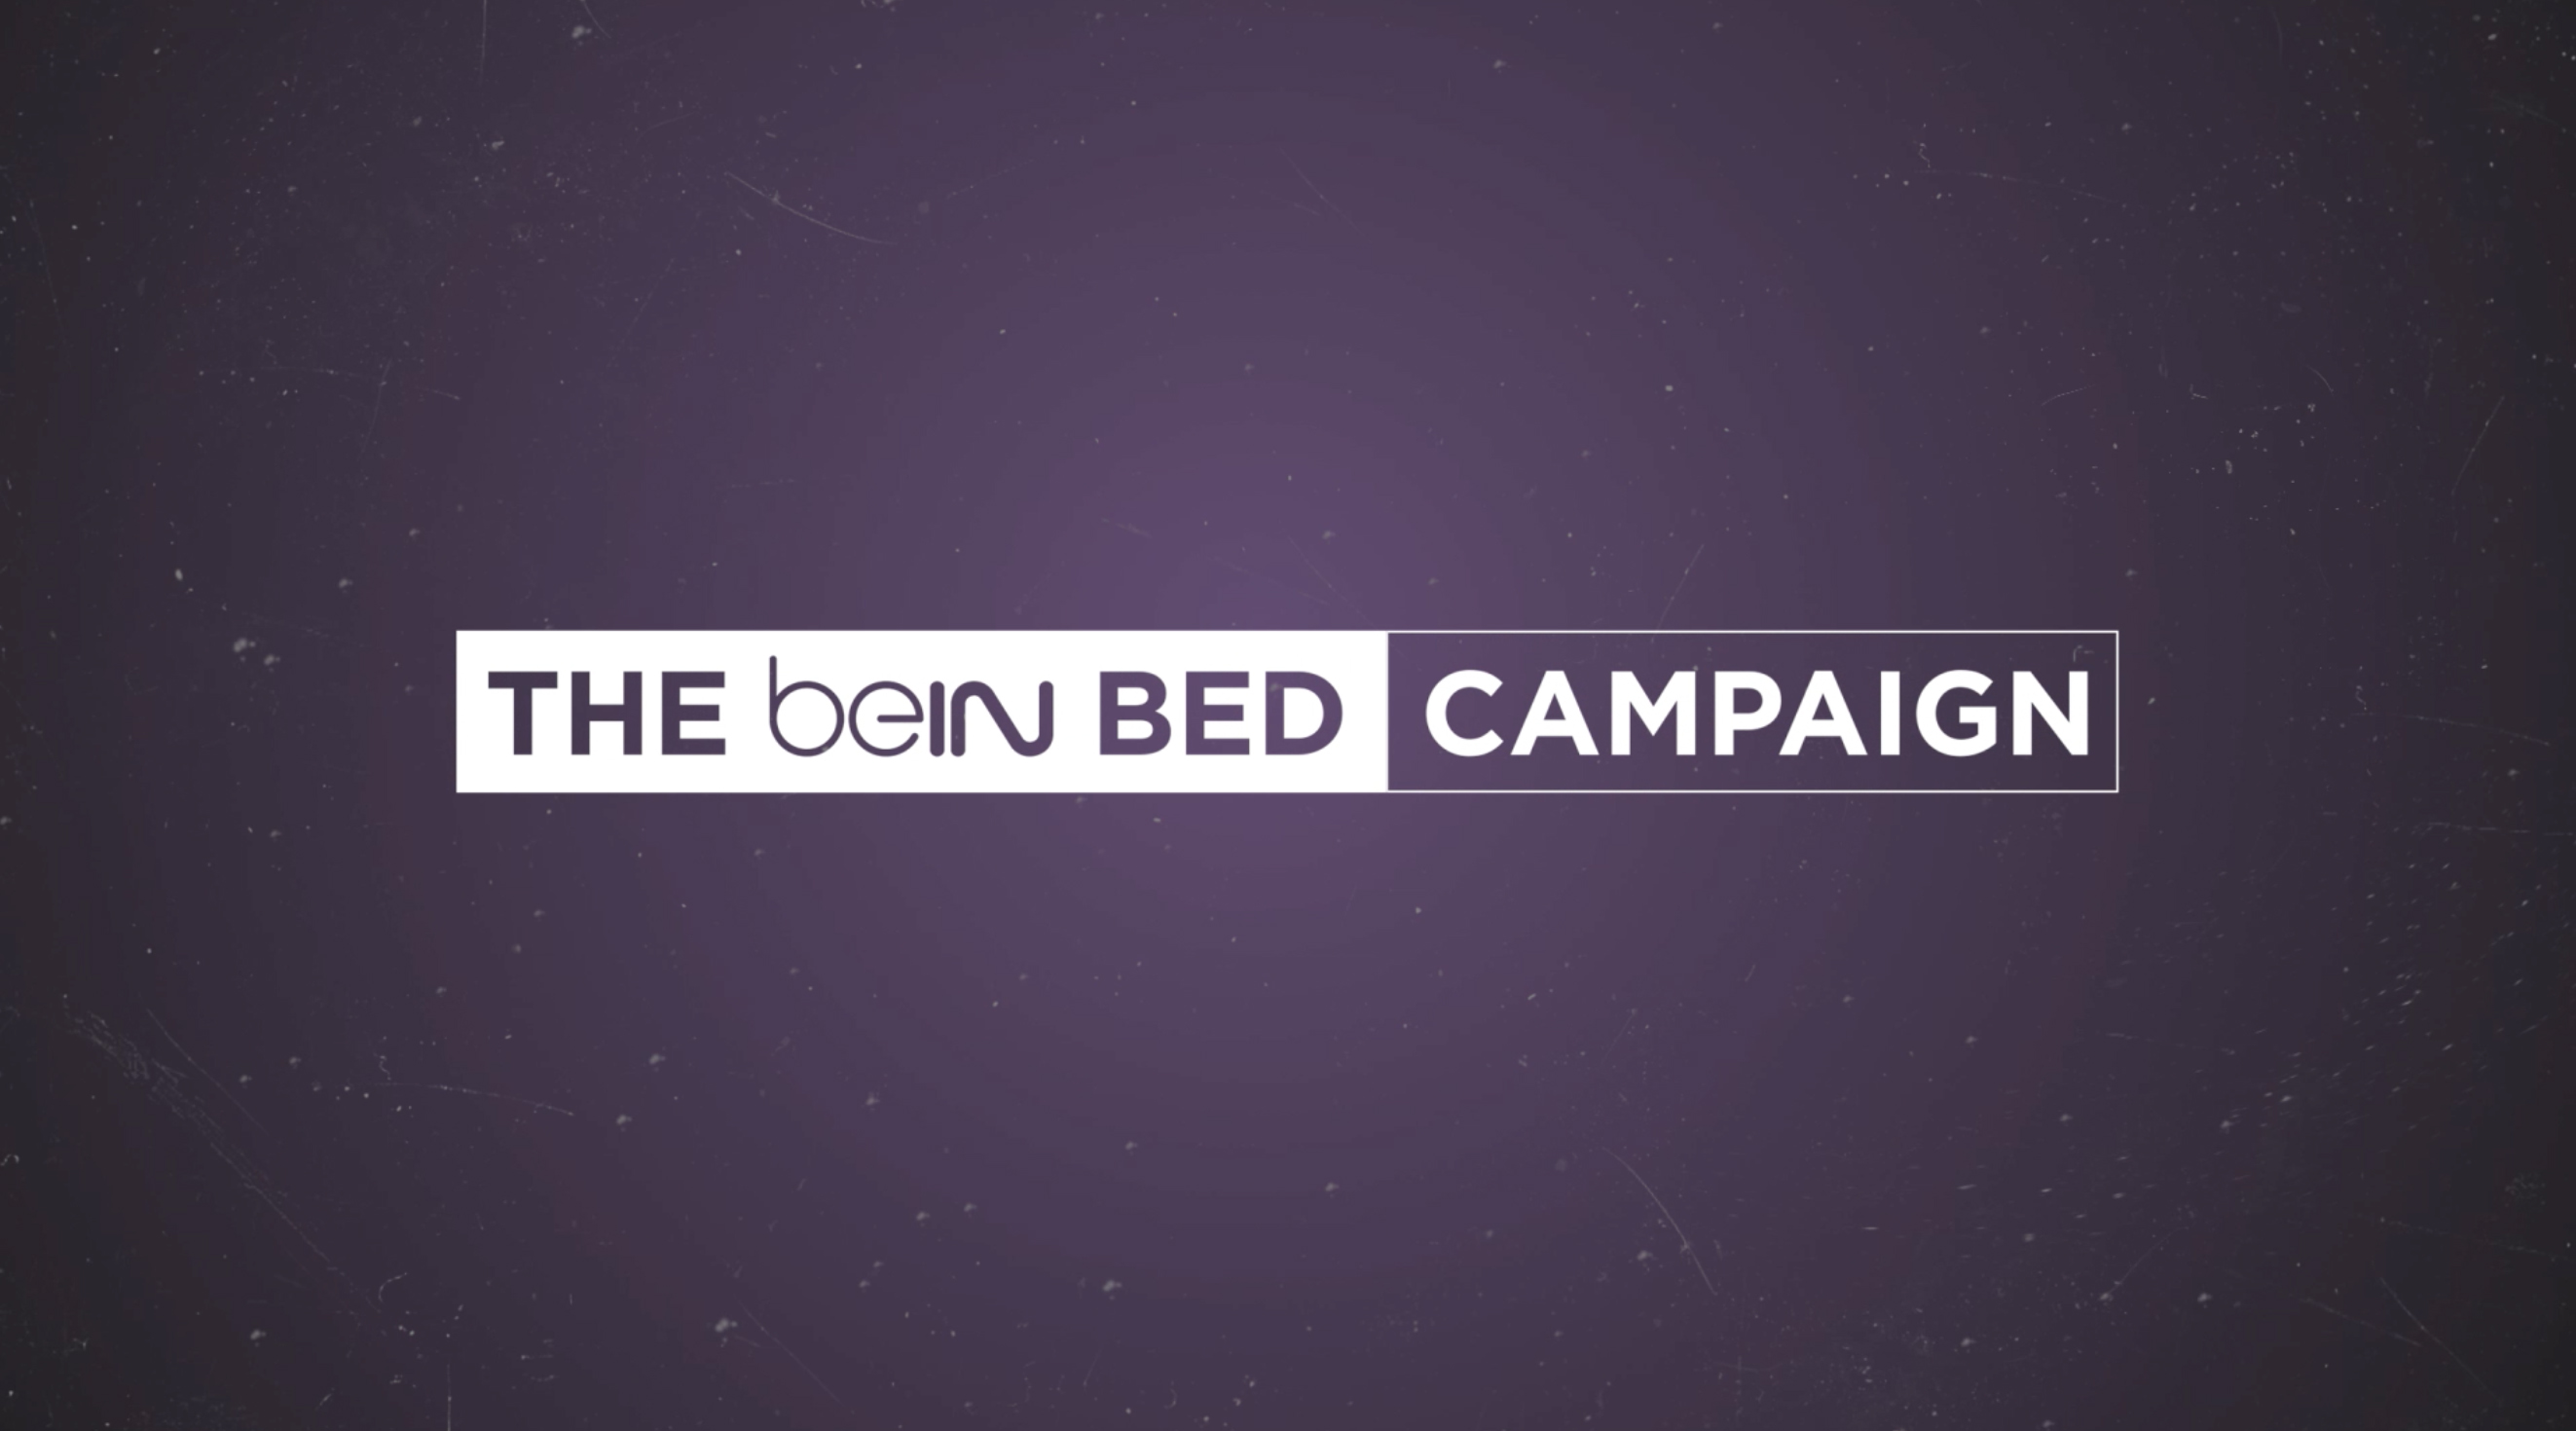 The beIN BED CAMPAIGN Thumbnail